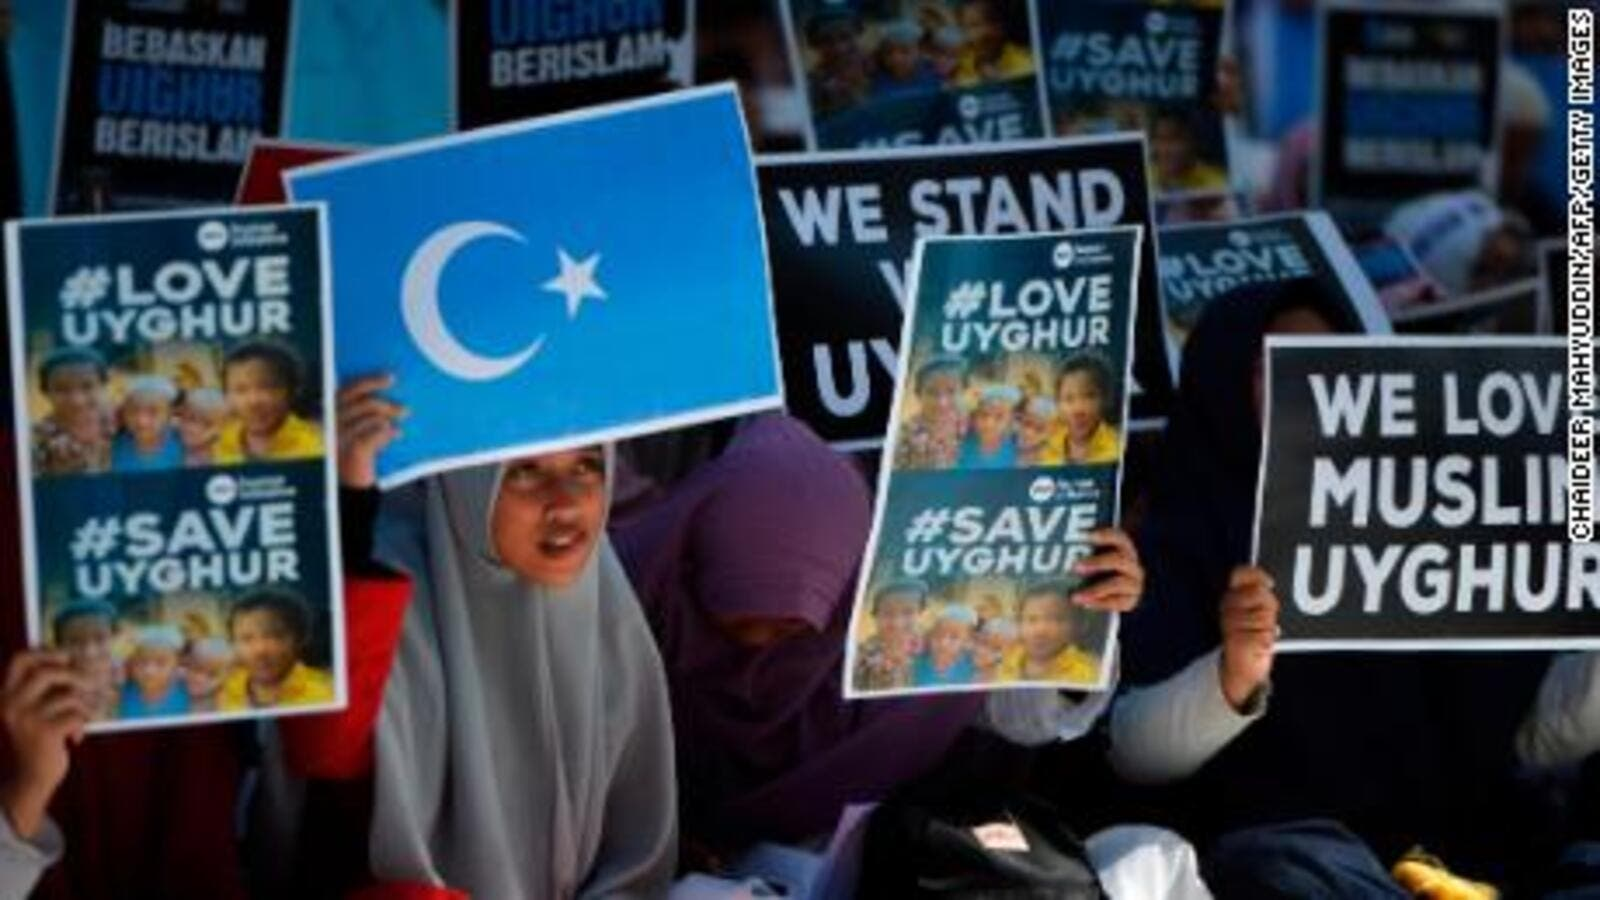 Indonesian Muslims demonstrate to denounce the Chinese goverment's policy on Uyghur Muslims. (AFP/File Photo)